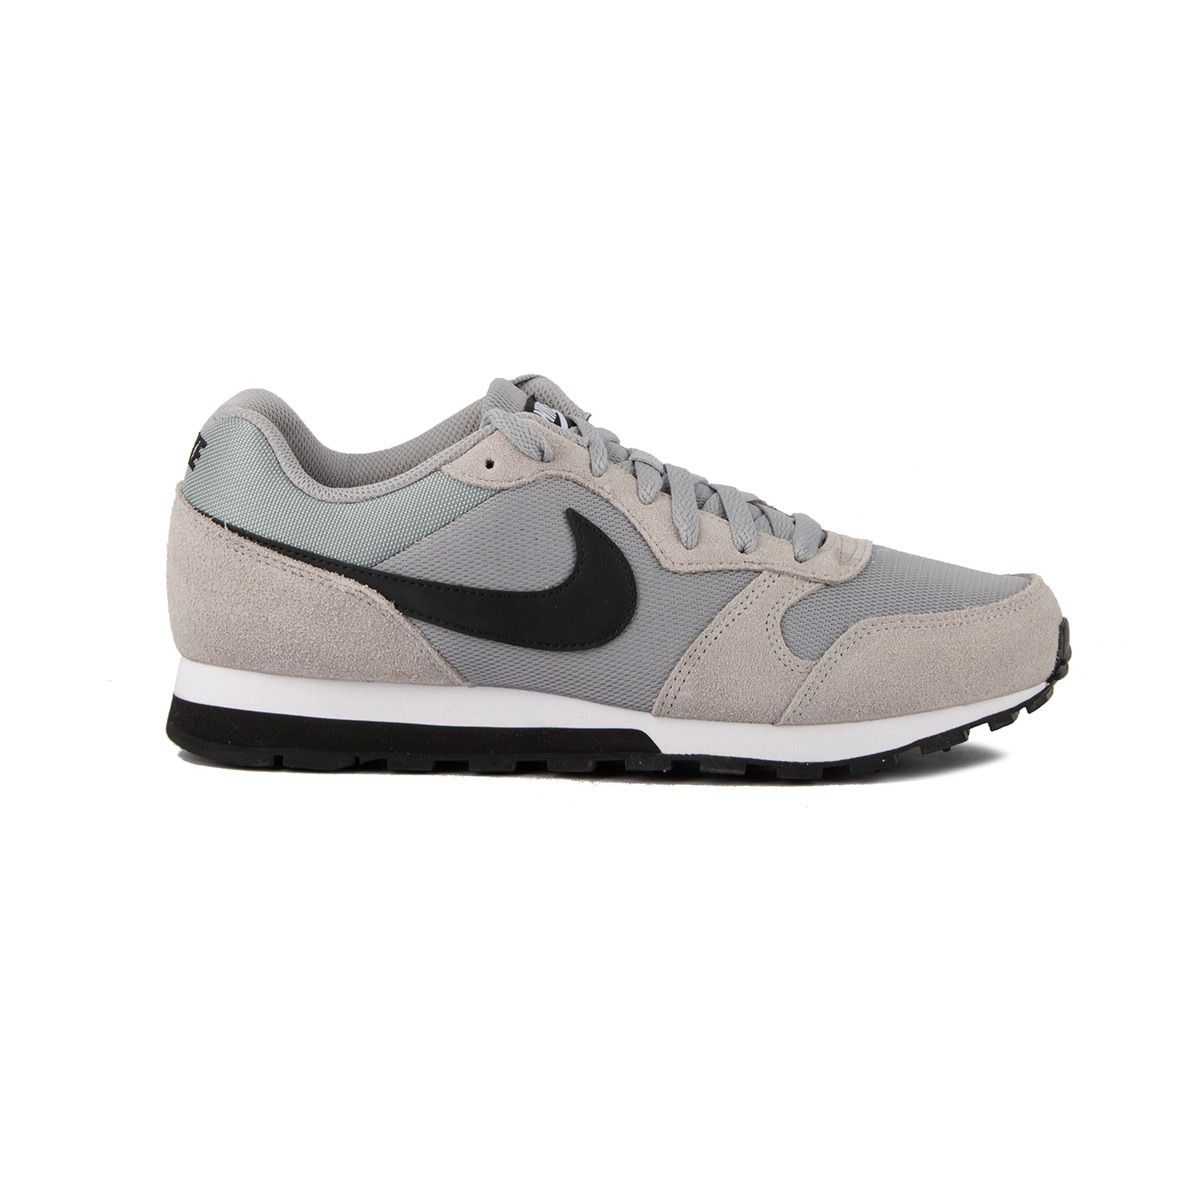 Nike MD Runner 2 Wolf Grey Black Gris Hombre